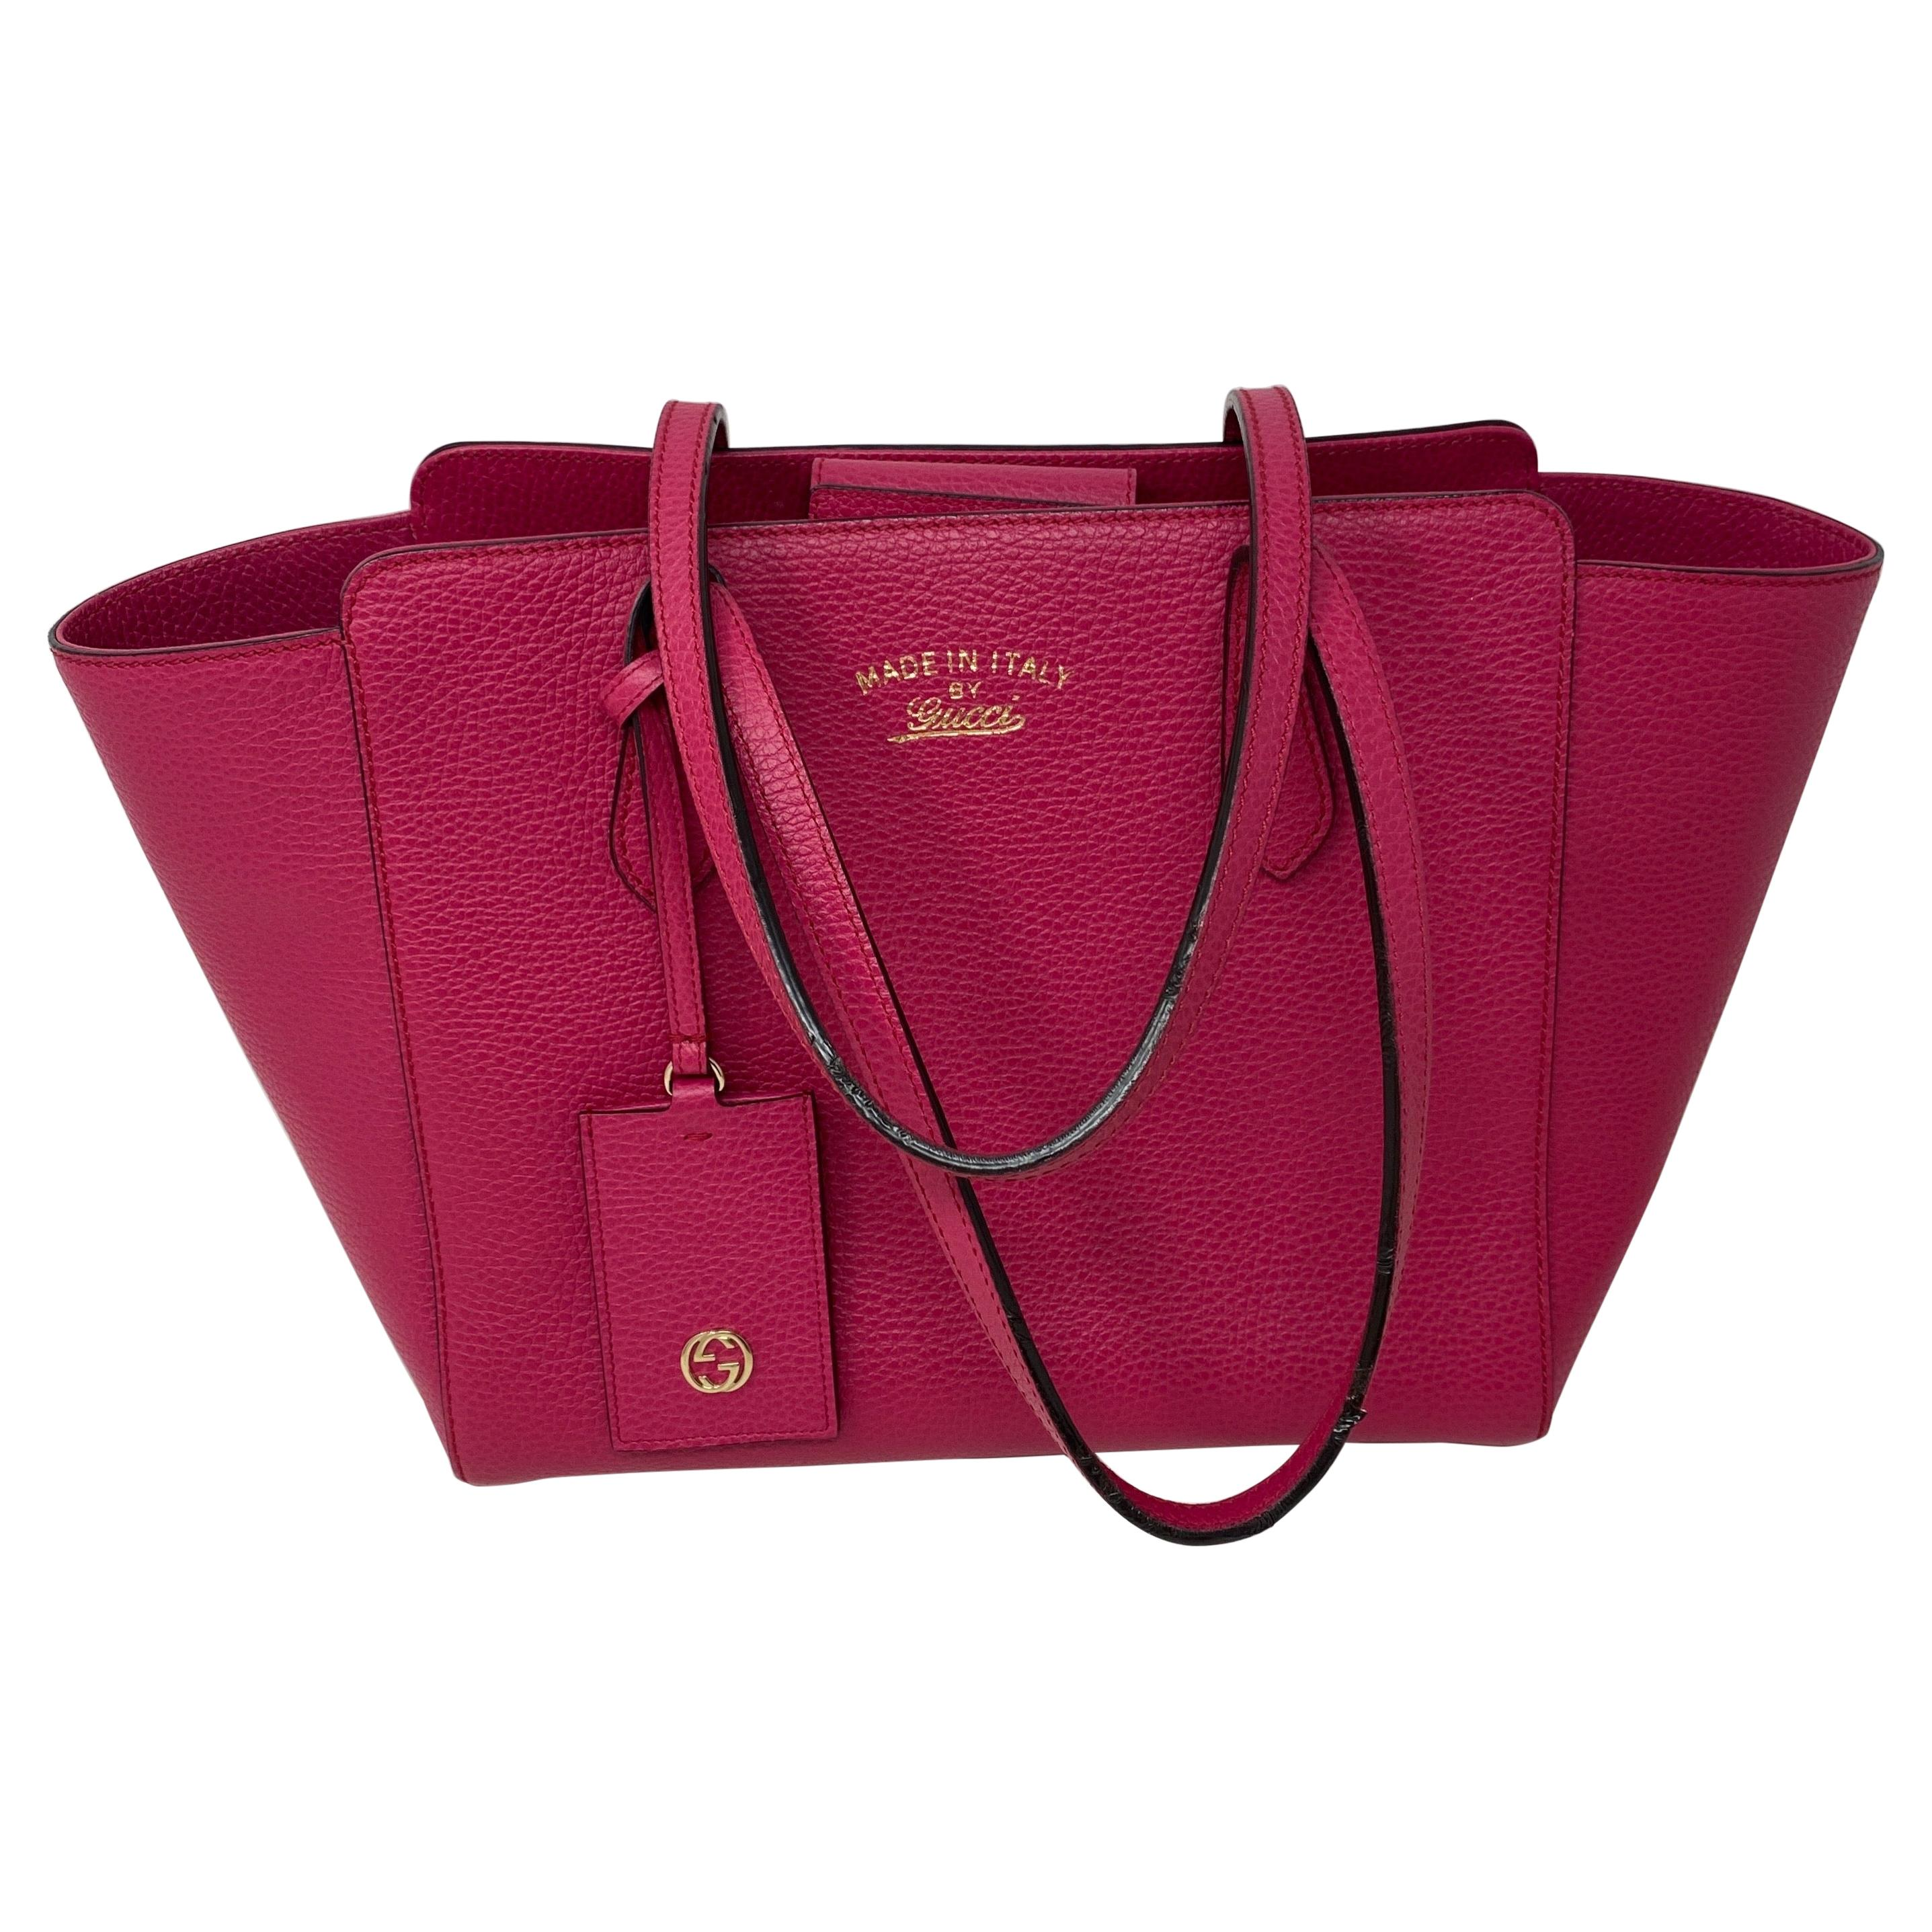 Gucci Hot Pink Leather Bag